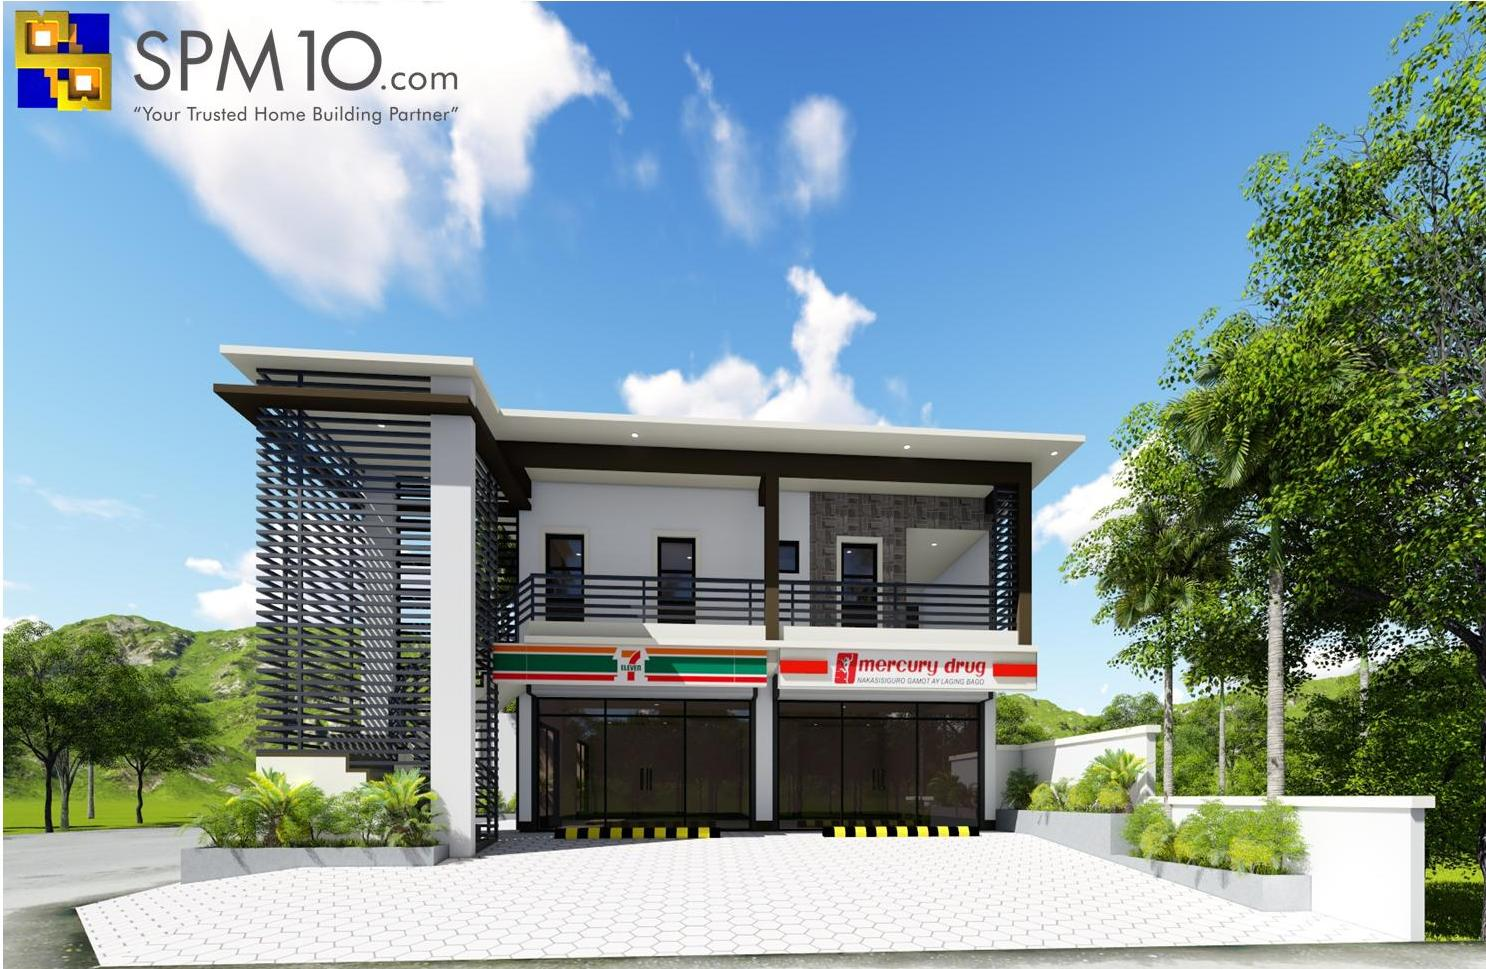 11 - 34+ Small Commercial House Design Philippines Gif